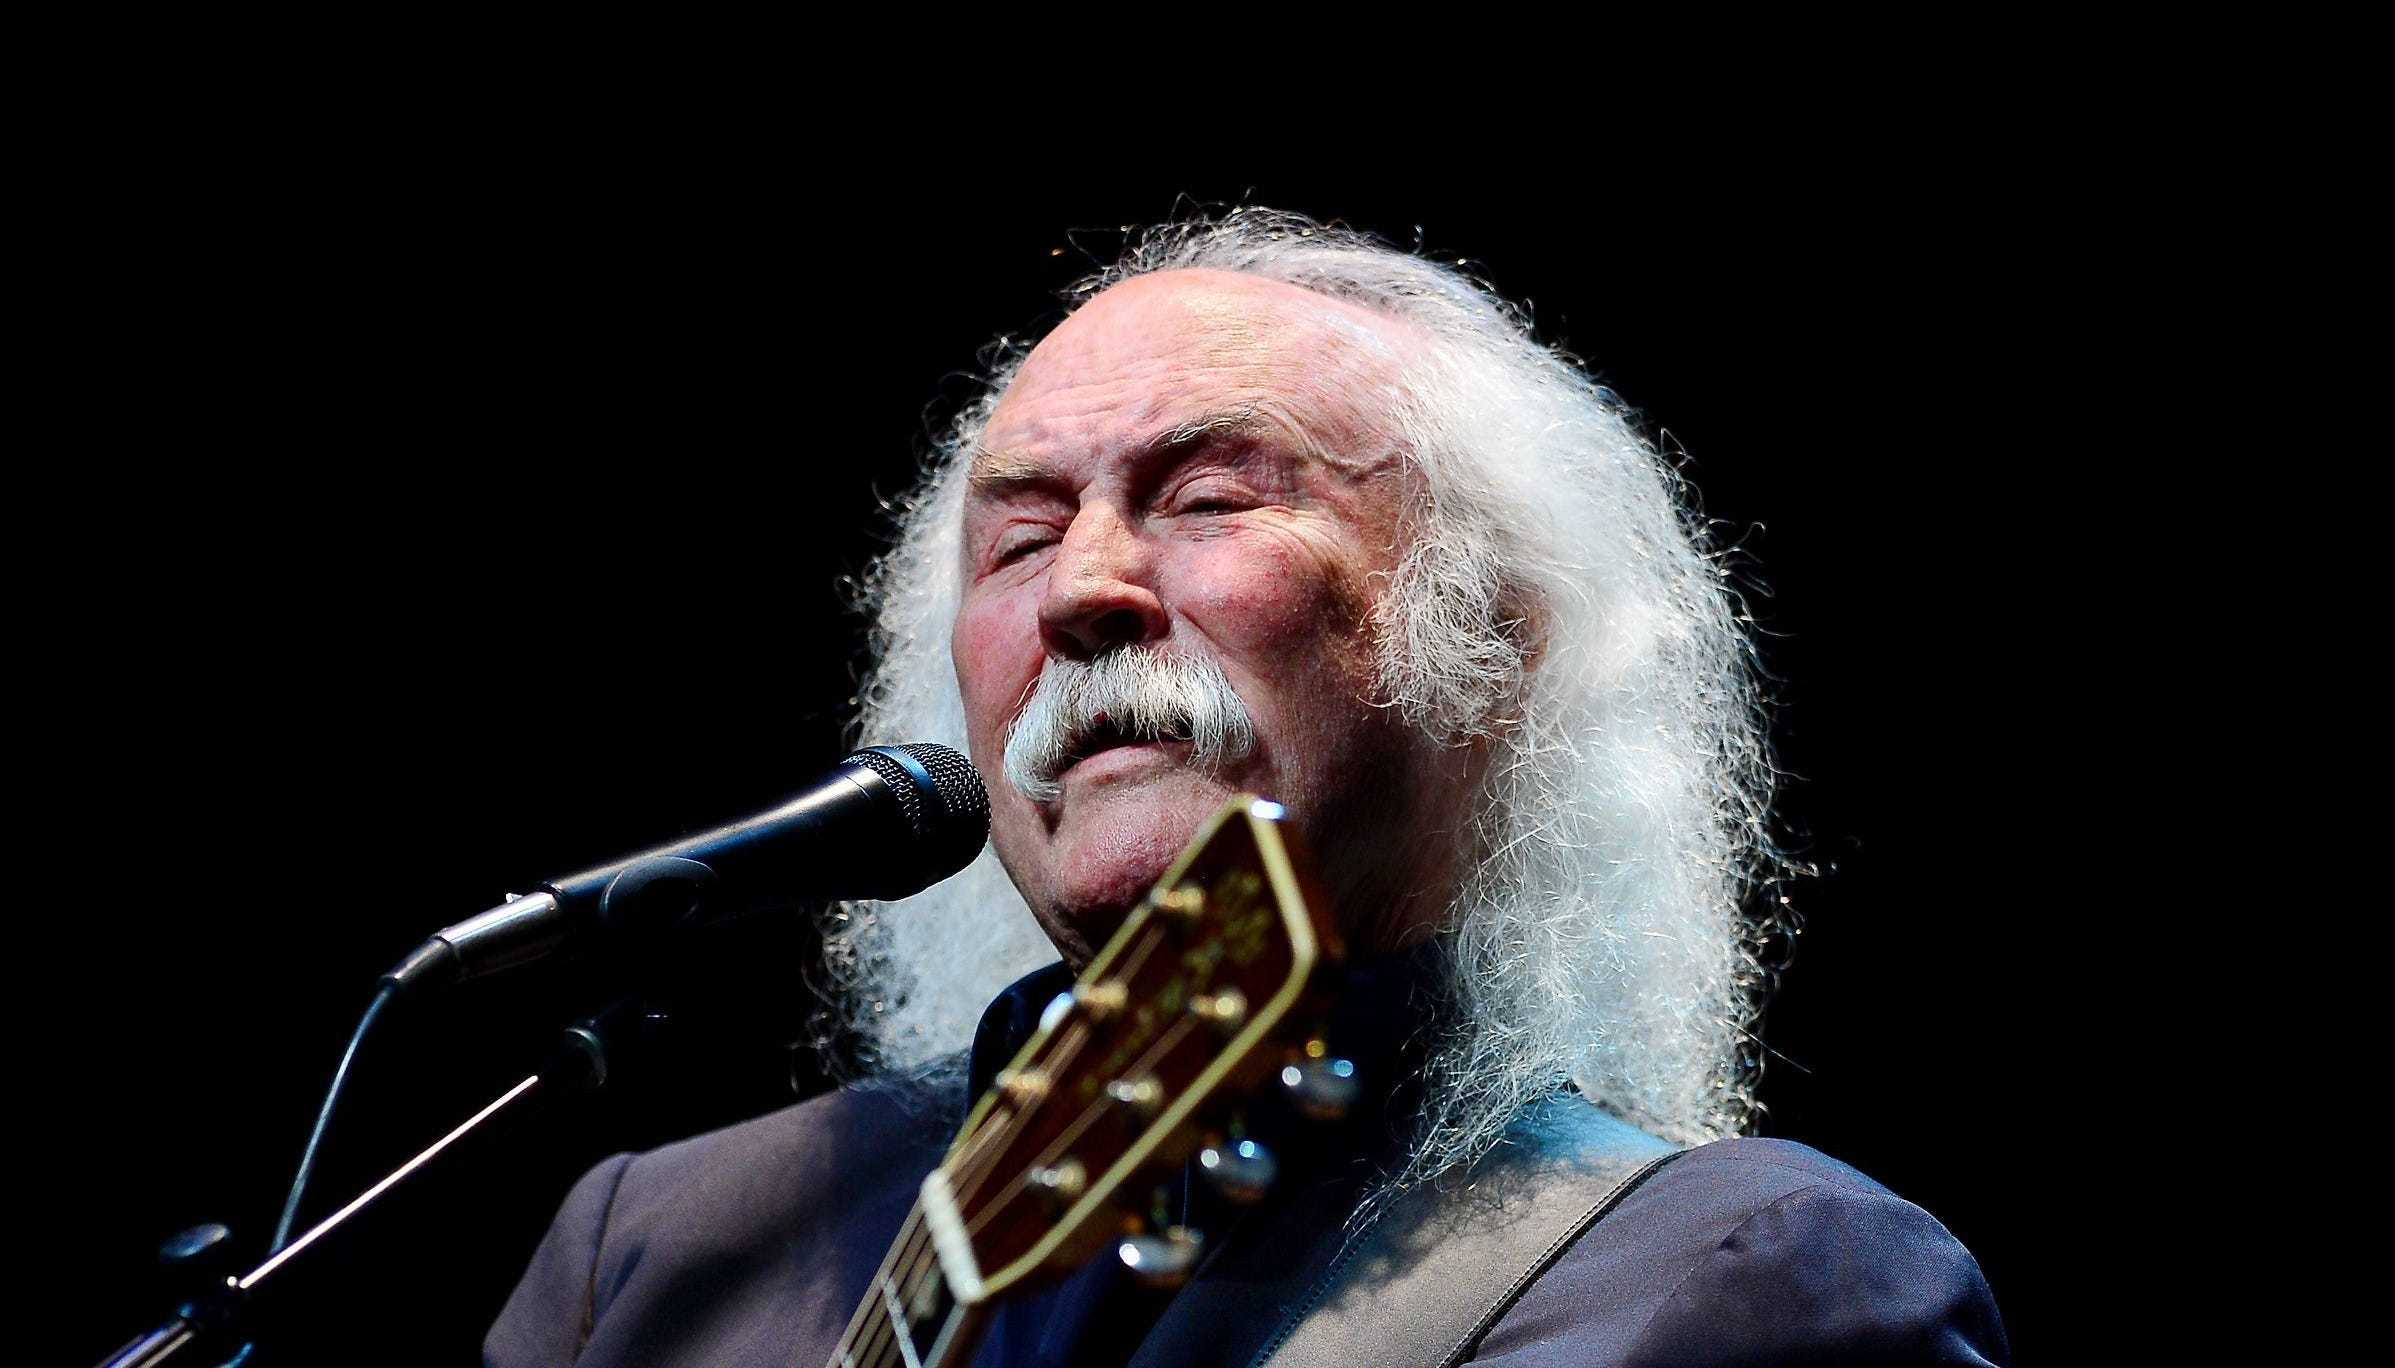 David Crosby performs at The Fillmore on June 9, 2015 in Miami Beach.